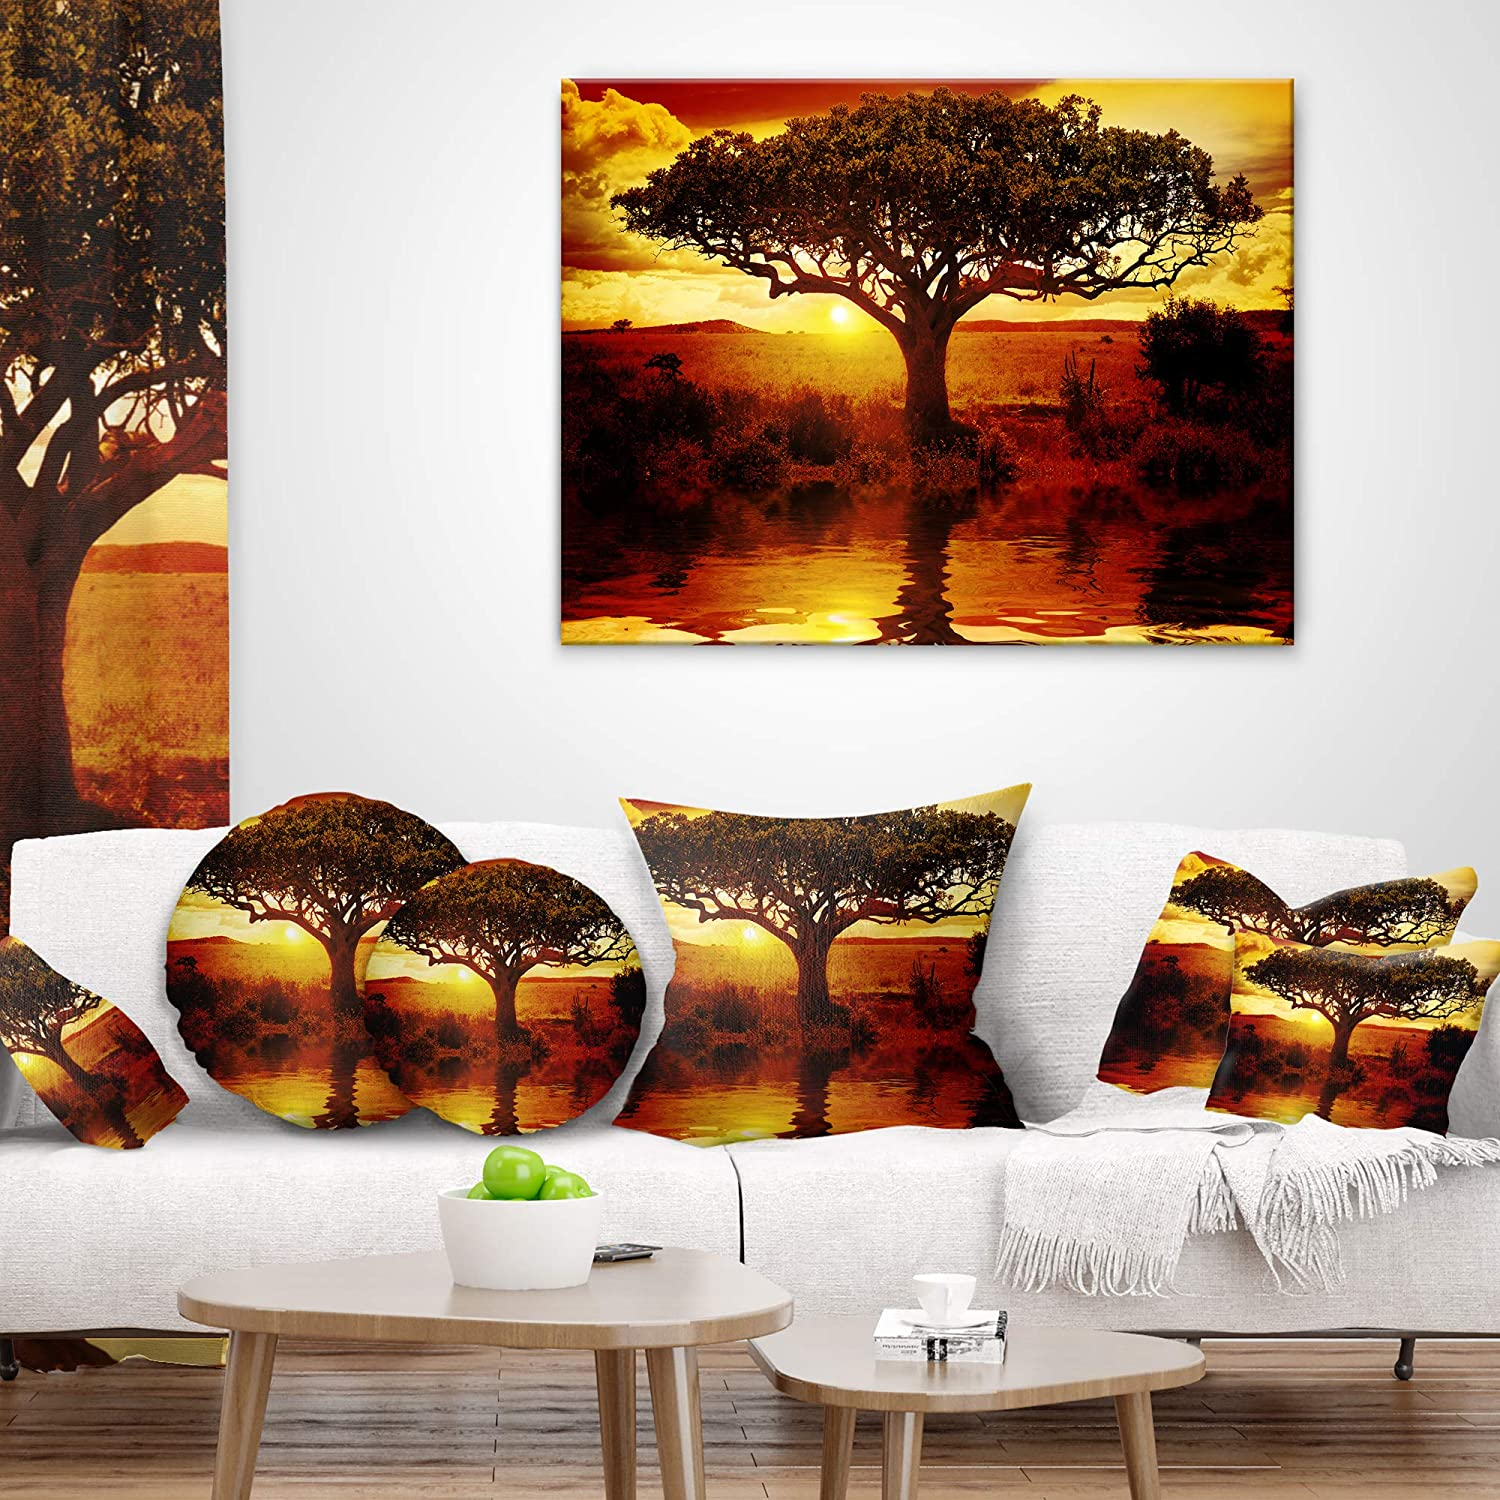 Designart CU12295-26-26 Lonely Tree Sunset African Landscape Printed Cushion Cover for Living Room in Insert Side Sofa Throw Pillow 26 in x 26 in